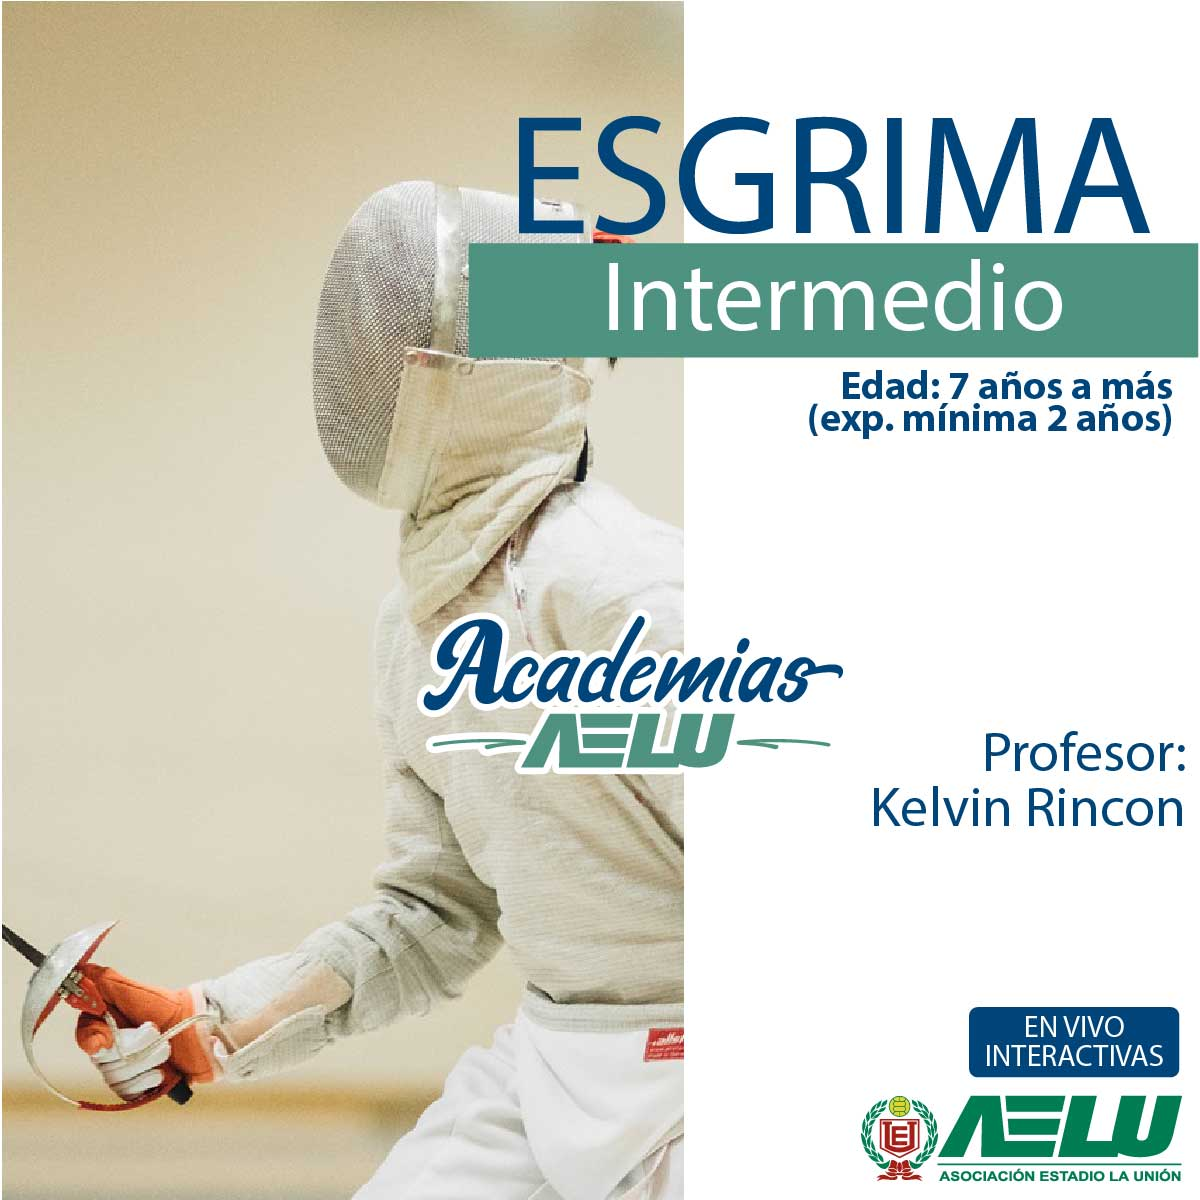 Esgrima - Intermedio (KR)